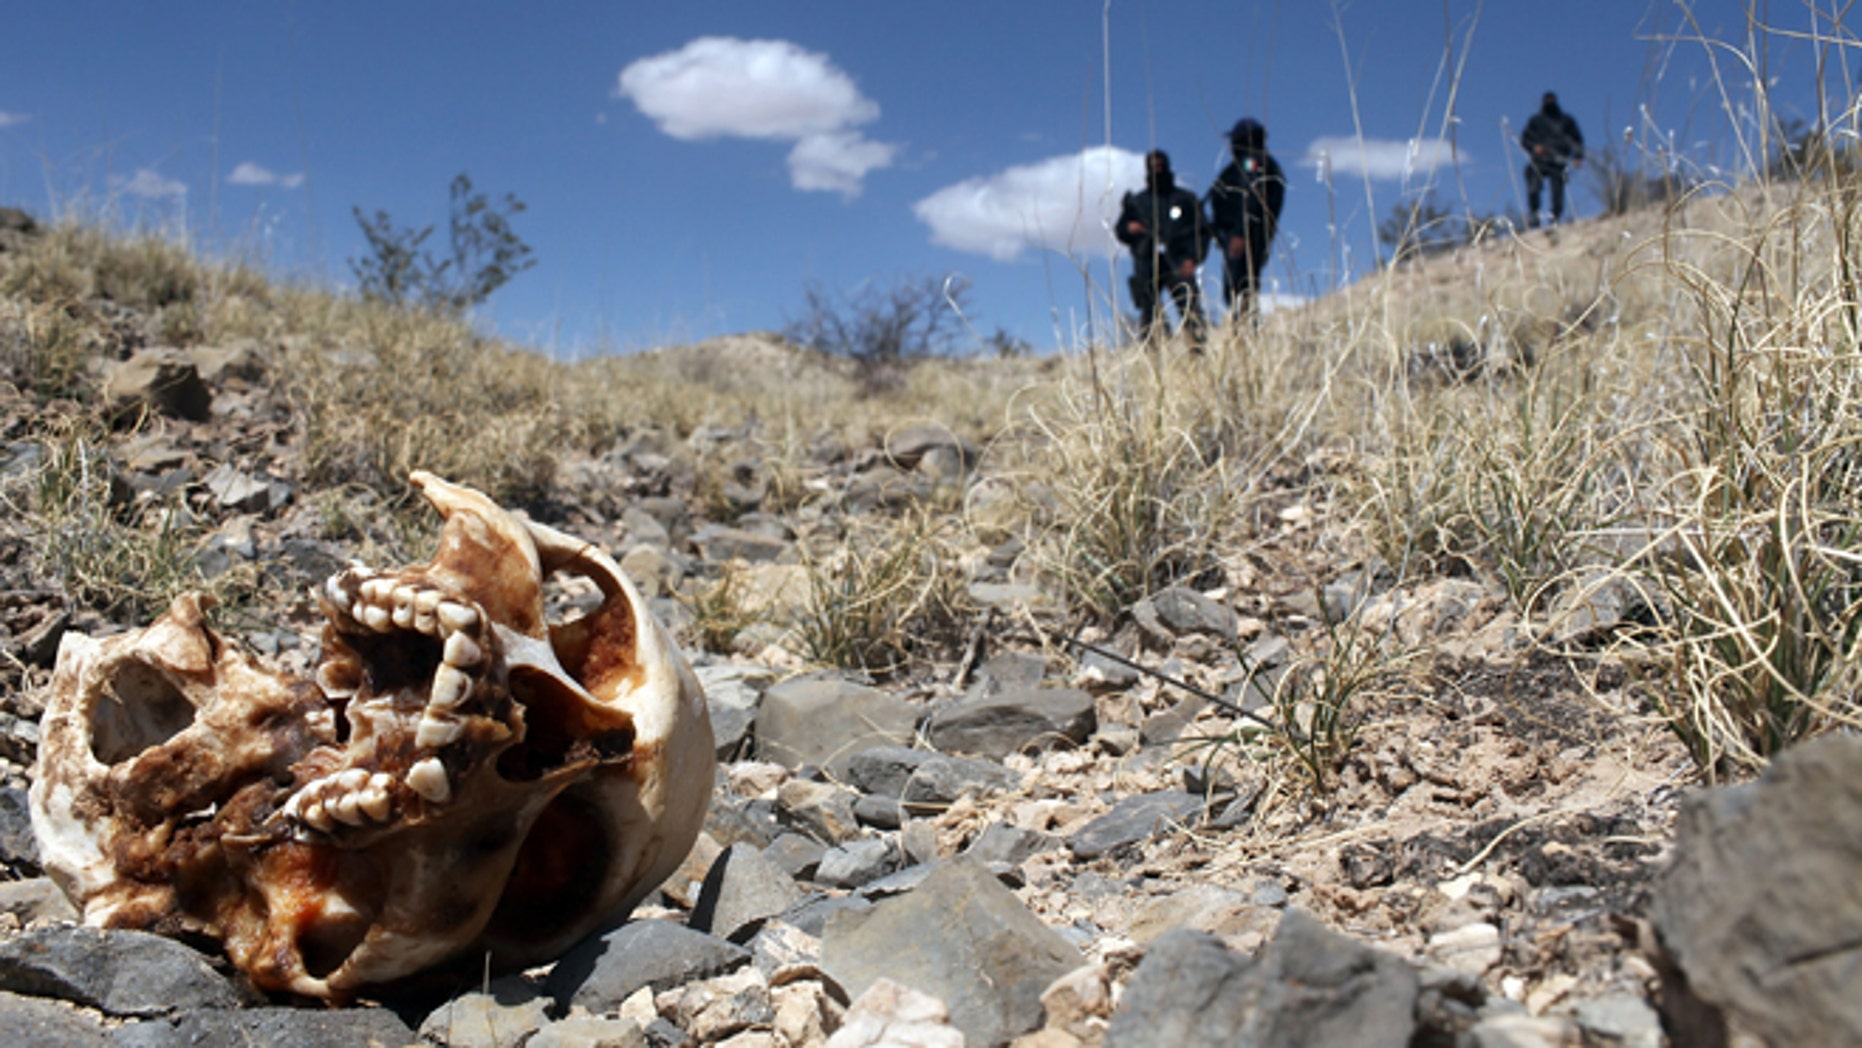 JUAREZ, MEXICO - MARCH 19:  Mexican police stand near a skull discovered with other remains in what is thought to be a large grave in the desert of victims of recent drug violence on March 19, 2010 in the county ofJuarez, Mexico. The border city of Juarez has been racked by violent drug related crime recently and has quickly become one of the most dangerous cities in the world to live. As drug cartels have been fighting over ever lucrative drug corridors along the United States border, the murder rate in Juarez has risen to 173 slayings for every 100,000 residents. President Felipe Calderon's strategy of sending 7000 troops to Juarez has not mitigated the situation. With a population of 1.3 million, 2,600 died in drug-related violence last year and 500 so far this year, including two Americans who worked for the U.S. Consulate last weekend as they returned from a children's party.  (Photo by Spencer Platt/Getty Images)